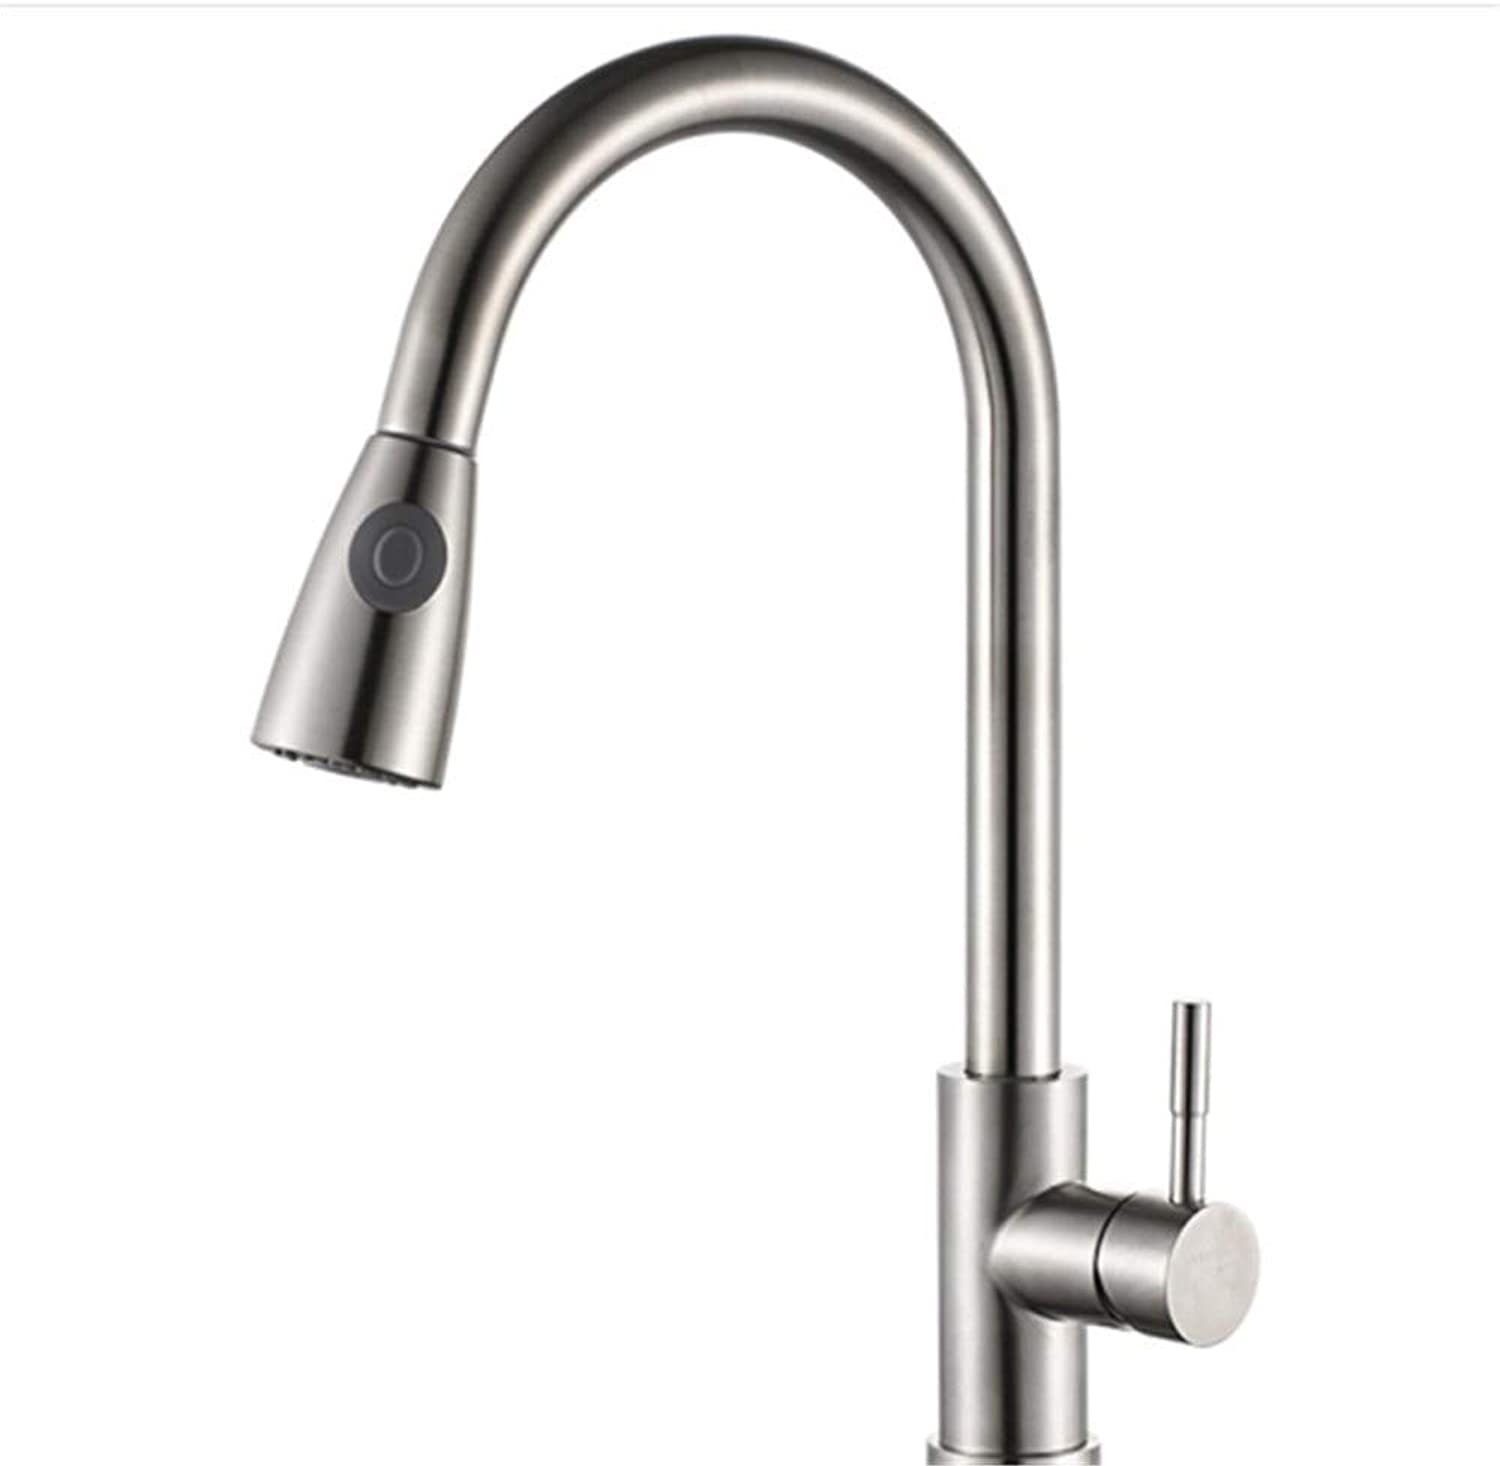 Water Tapdrinking Designer Arch304 Stainless Steel Universal redary Faucet